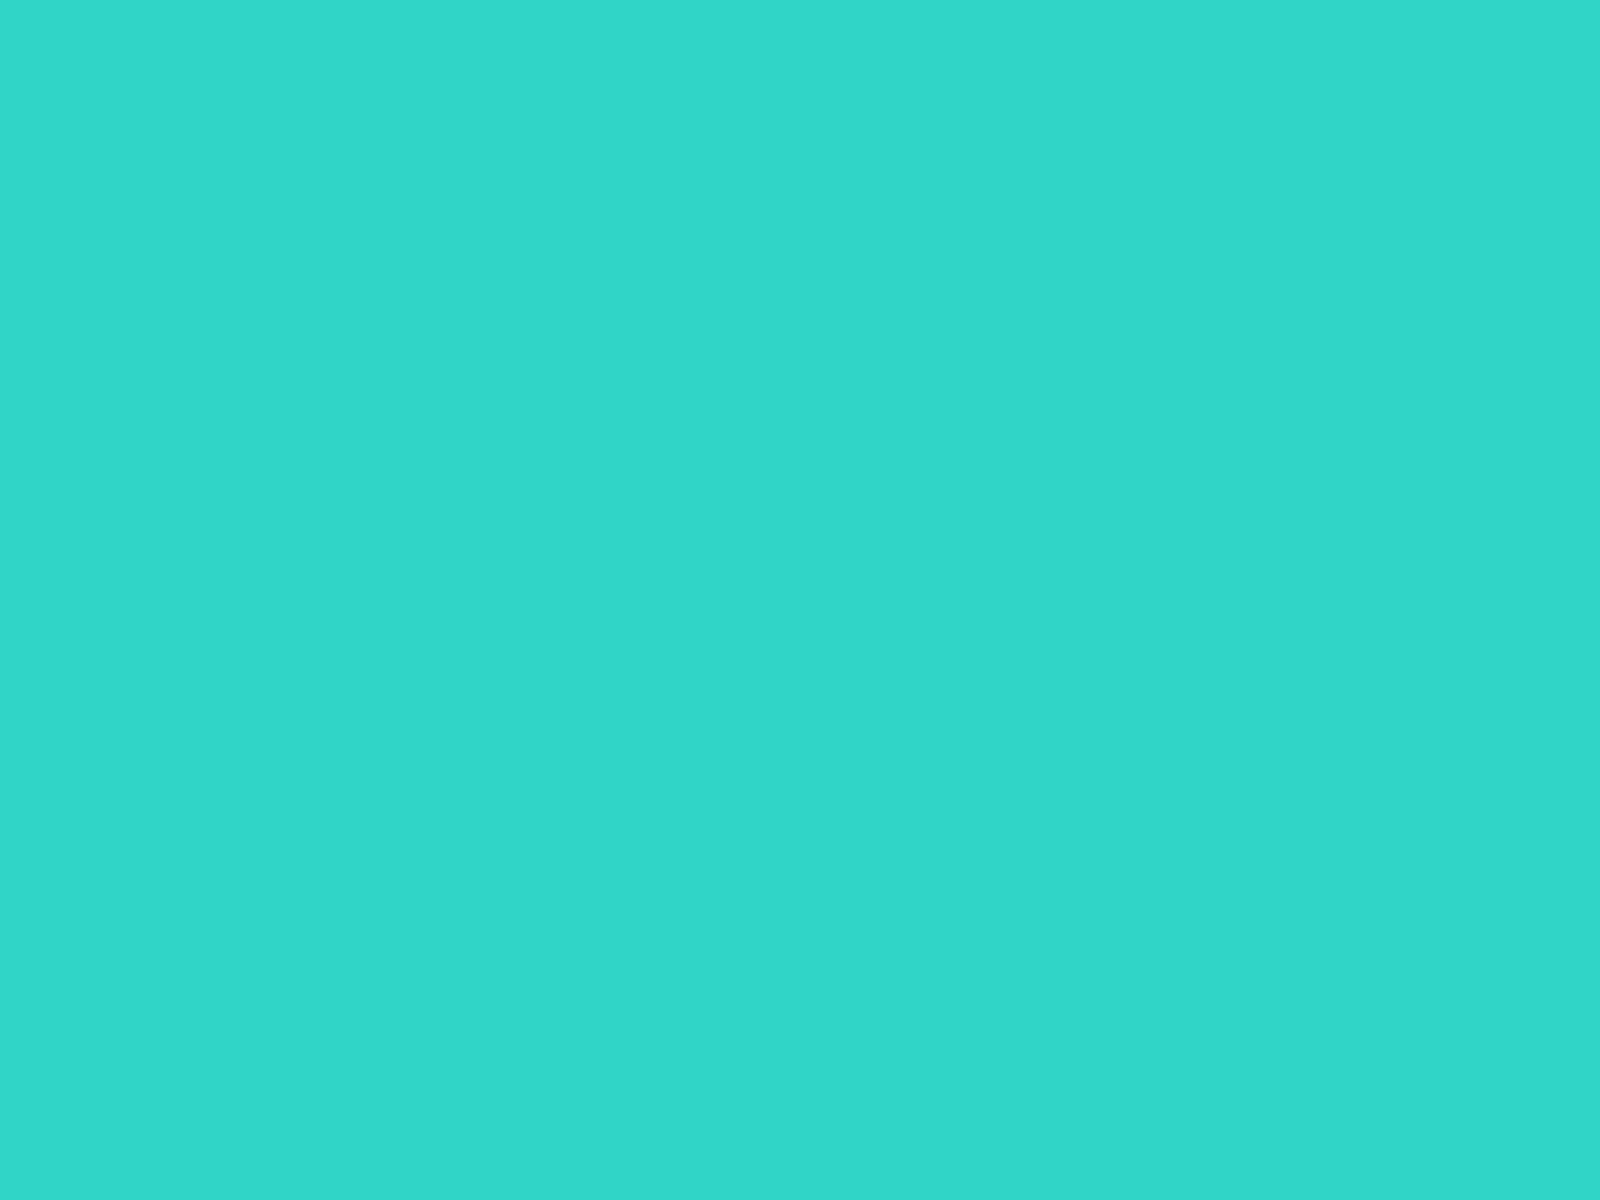 1600x1200 Turquoise Solid Color Background